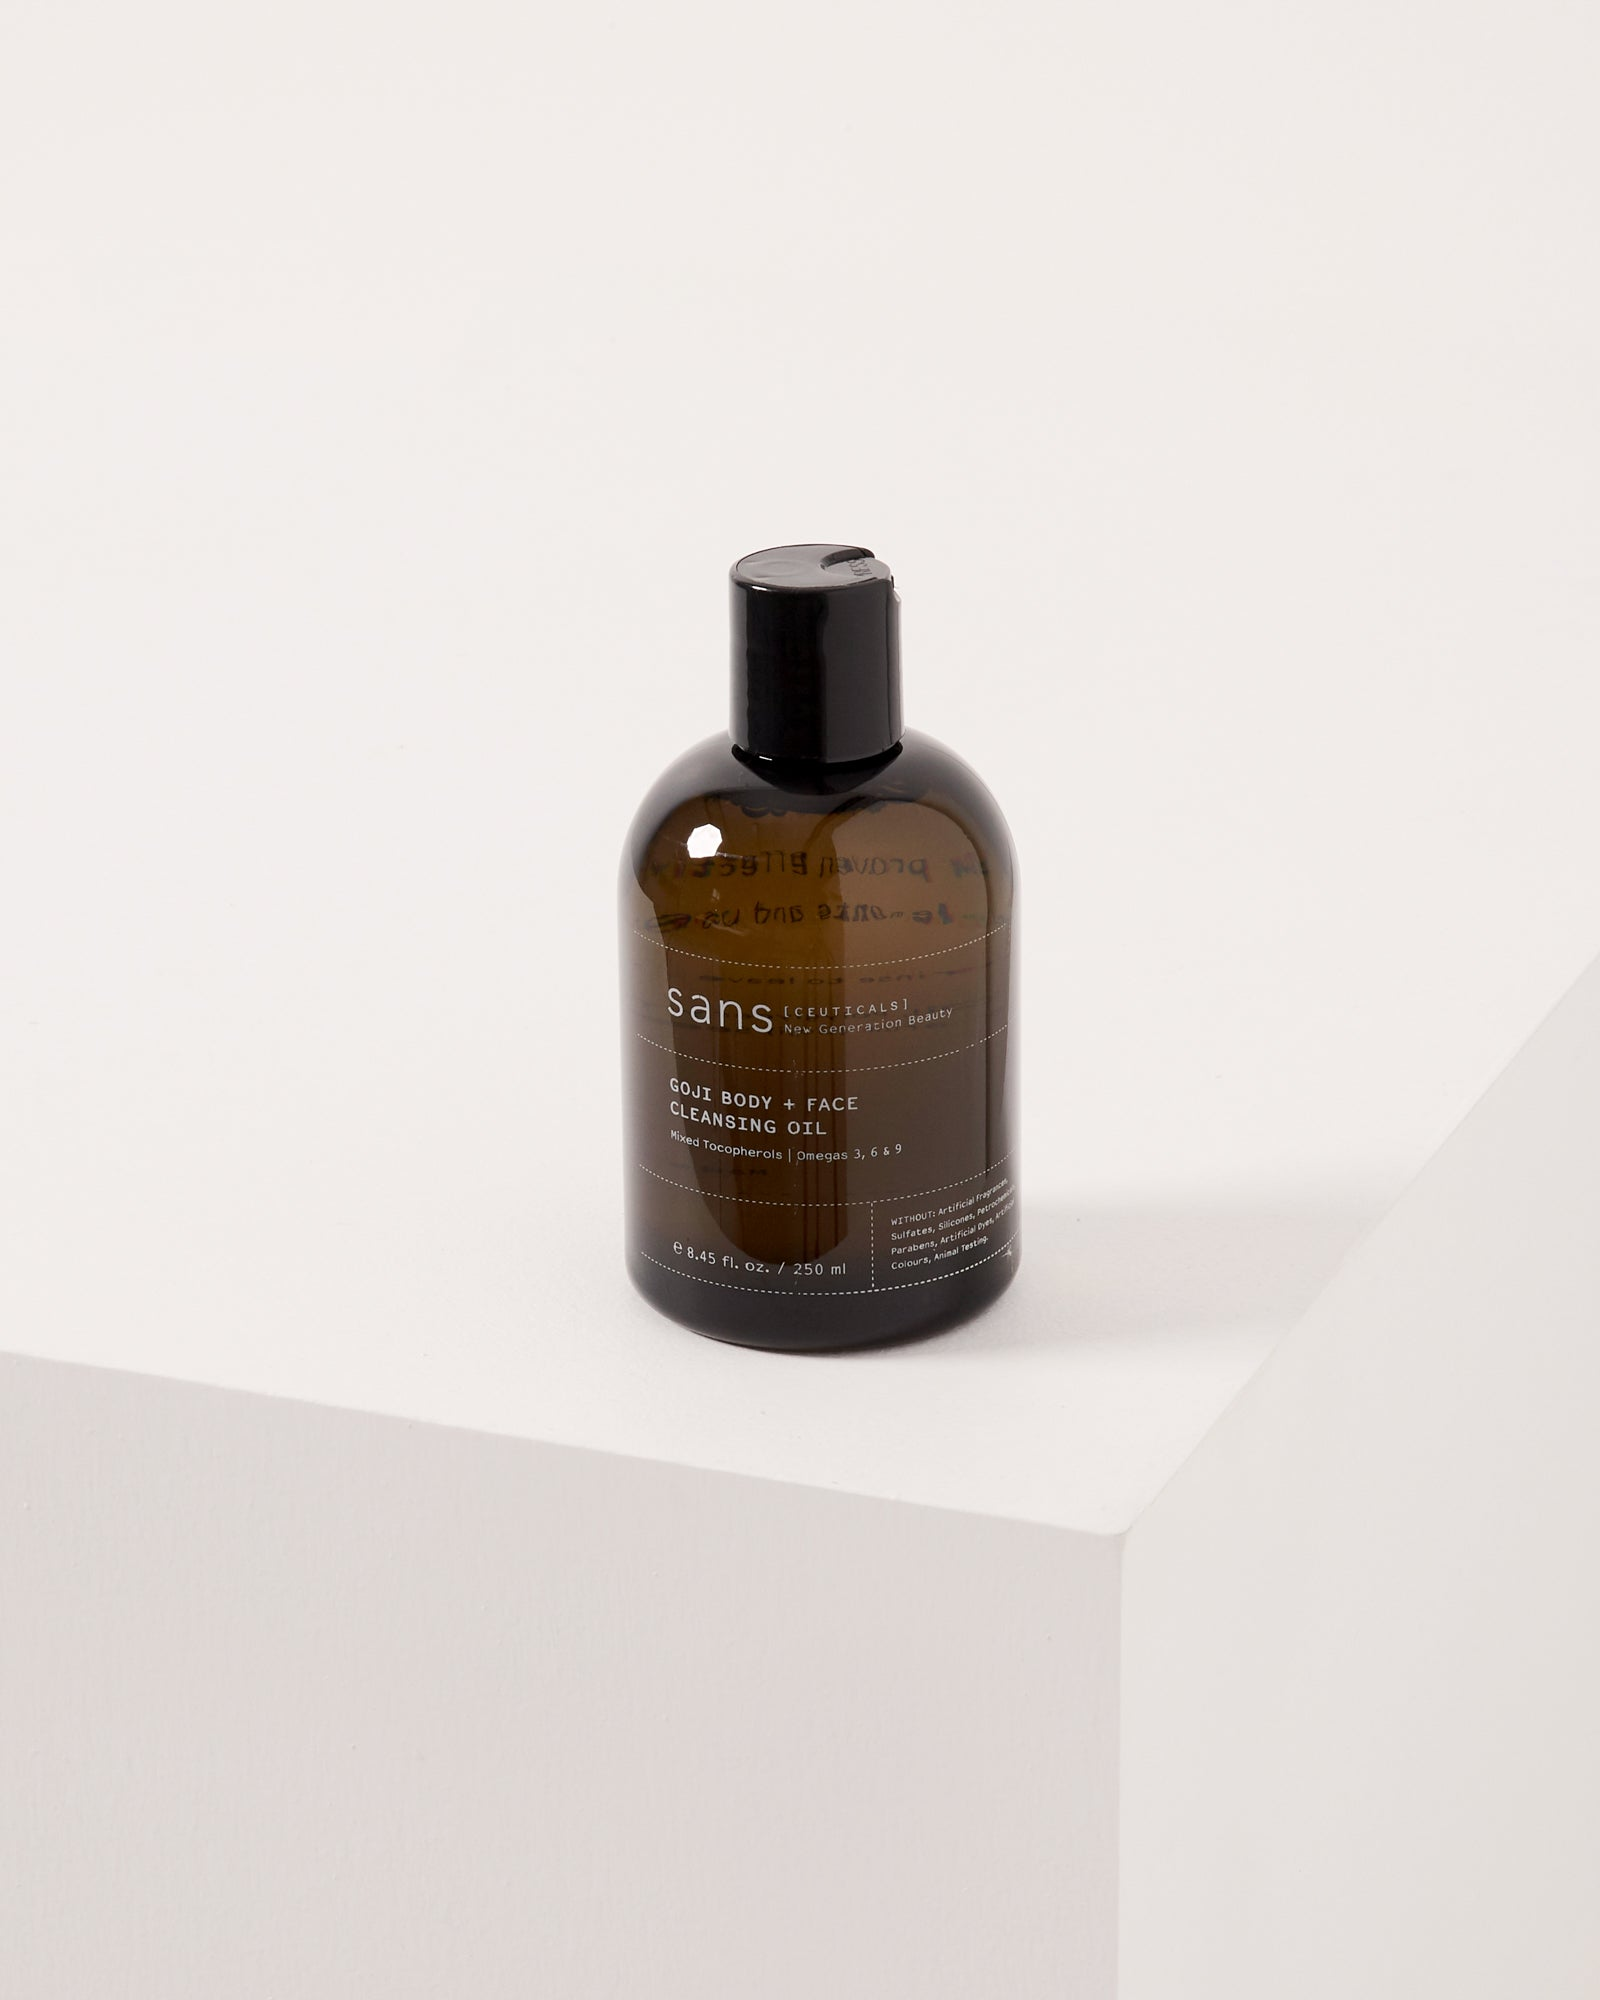 Sans - Goji Body + Face Cleansing Oil